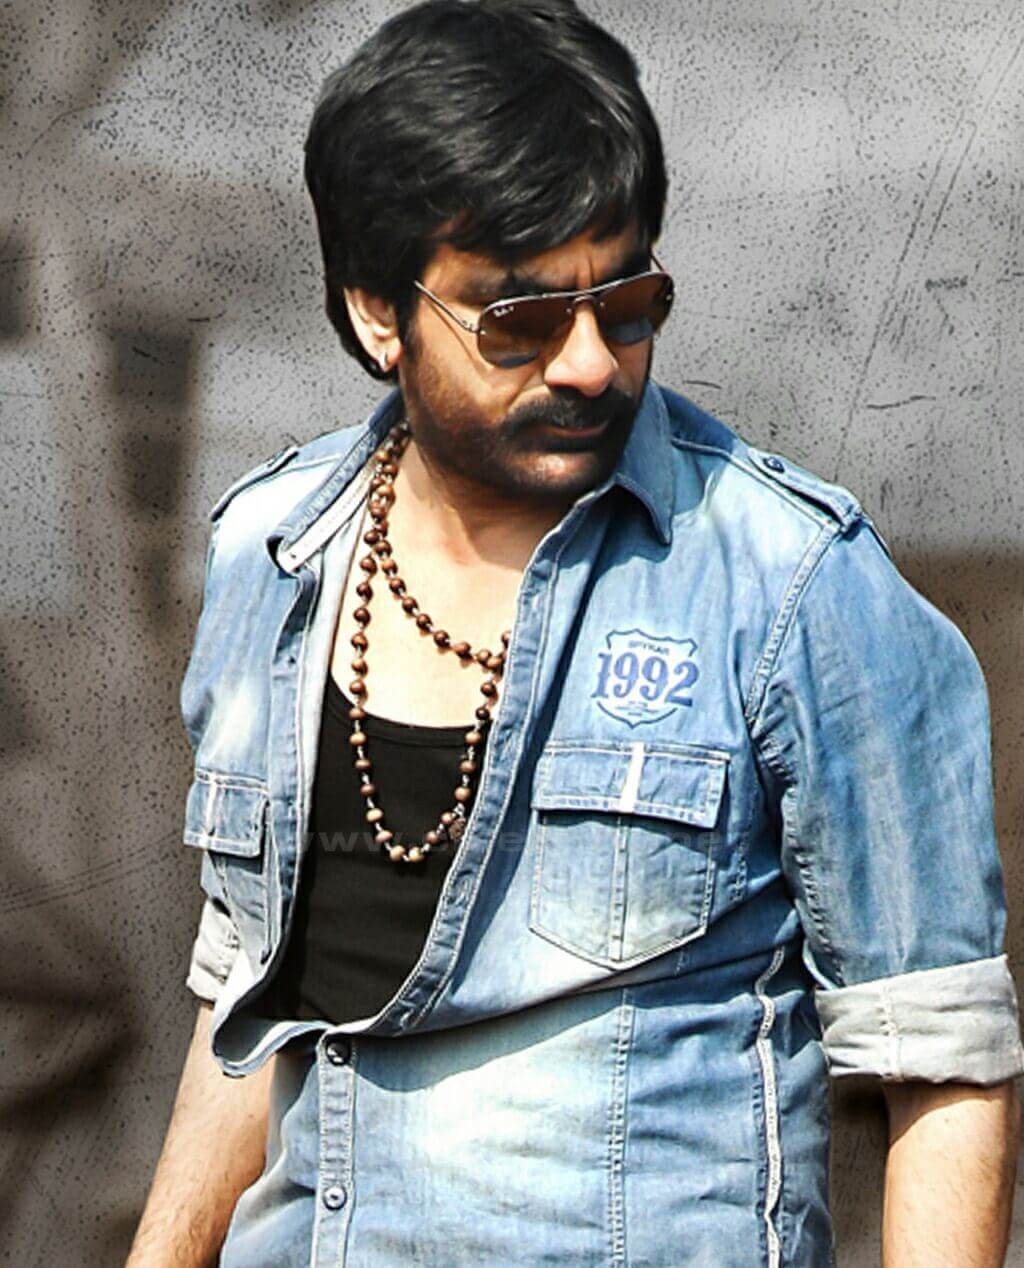 Ravi Teja Movie, Photos(images), Date Of Birth, Family, Brother, Height, Biography, Net Worth, Age, Wife, Details, Education, Instagram, Twitter, Wiki, Imdb, Facebook, Hairstyle, Youtube (3)